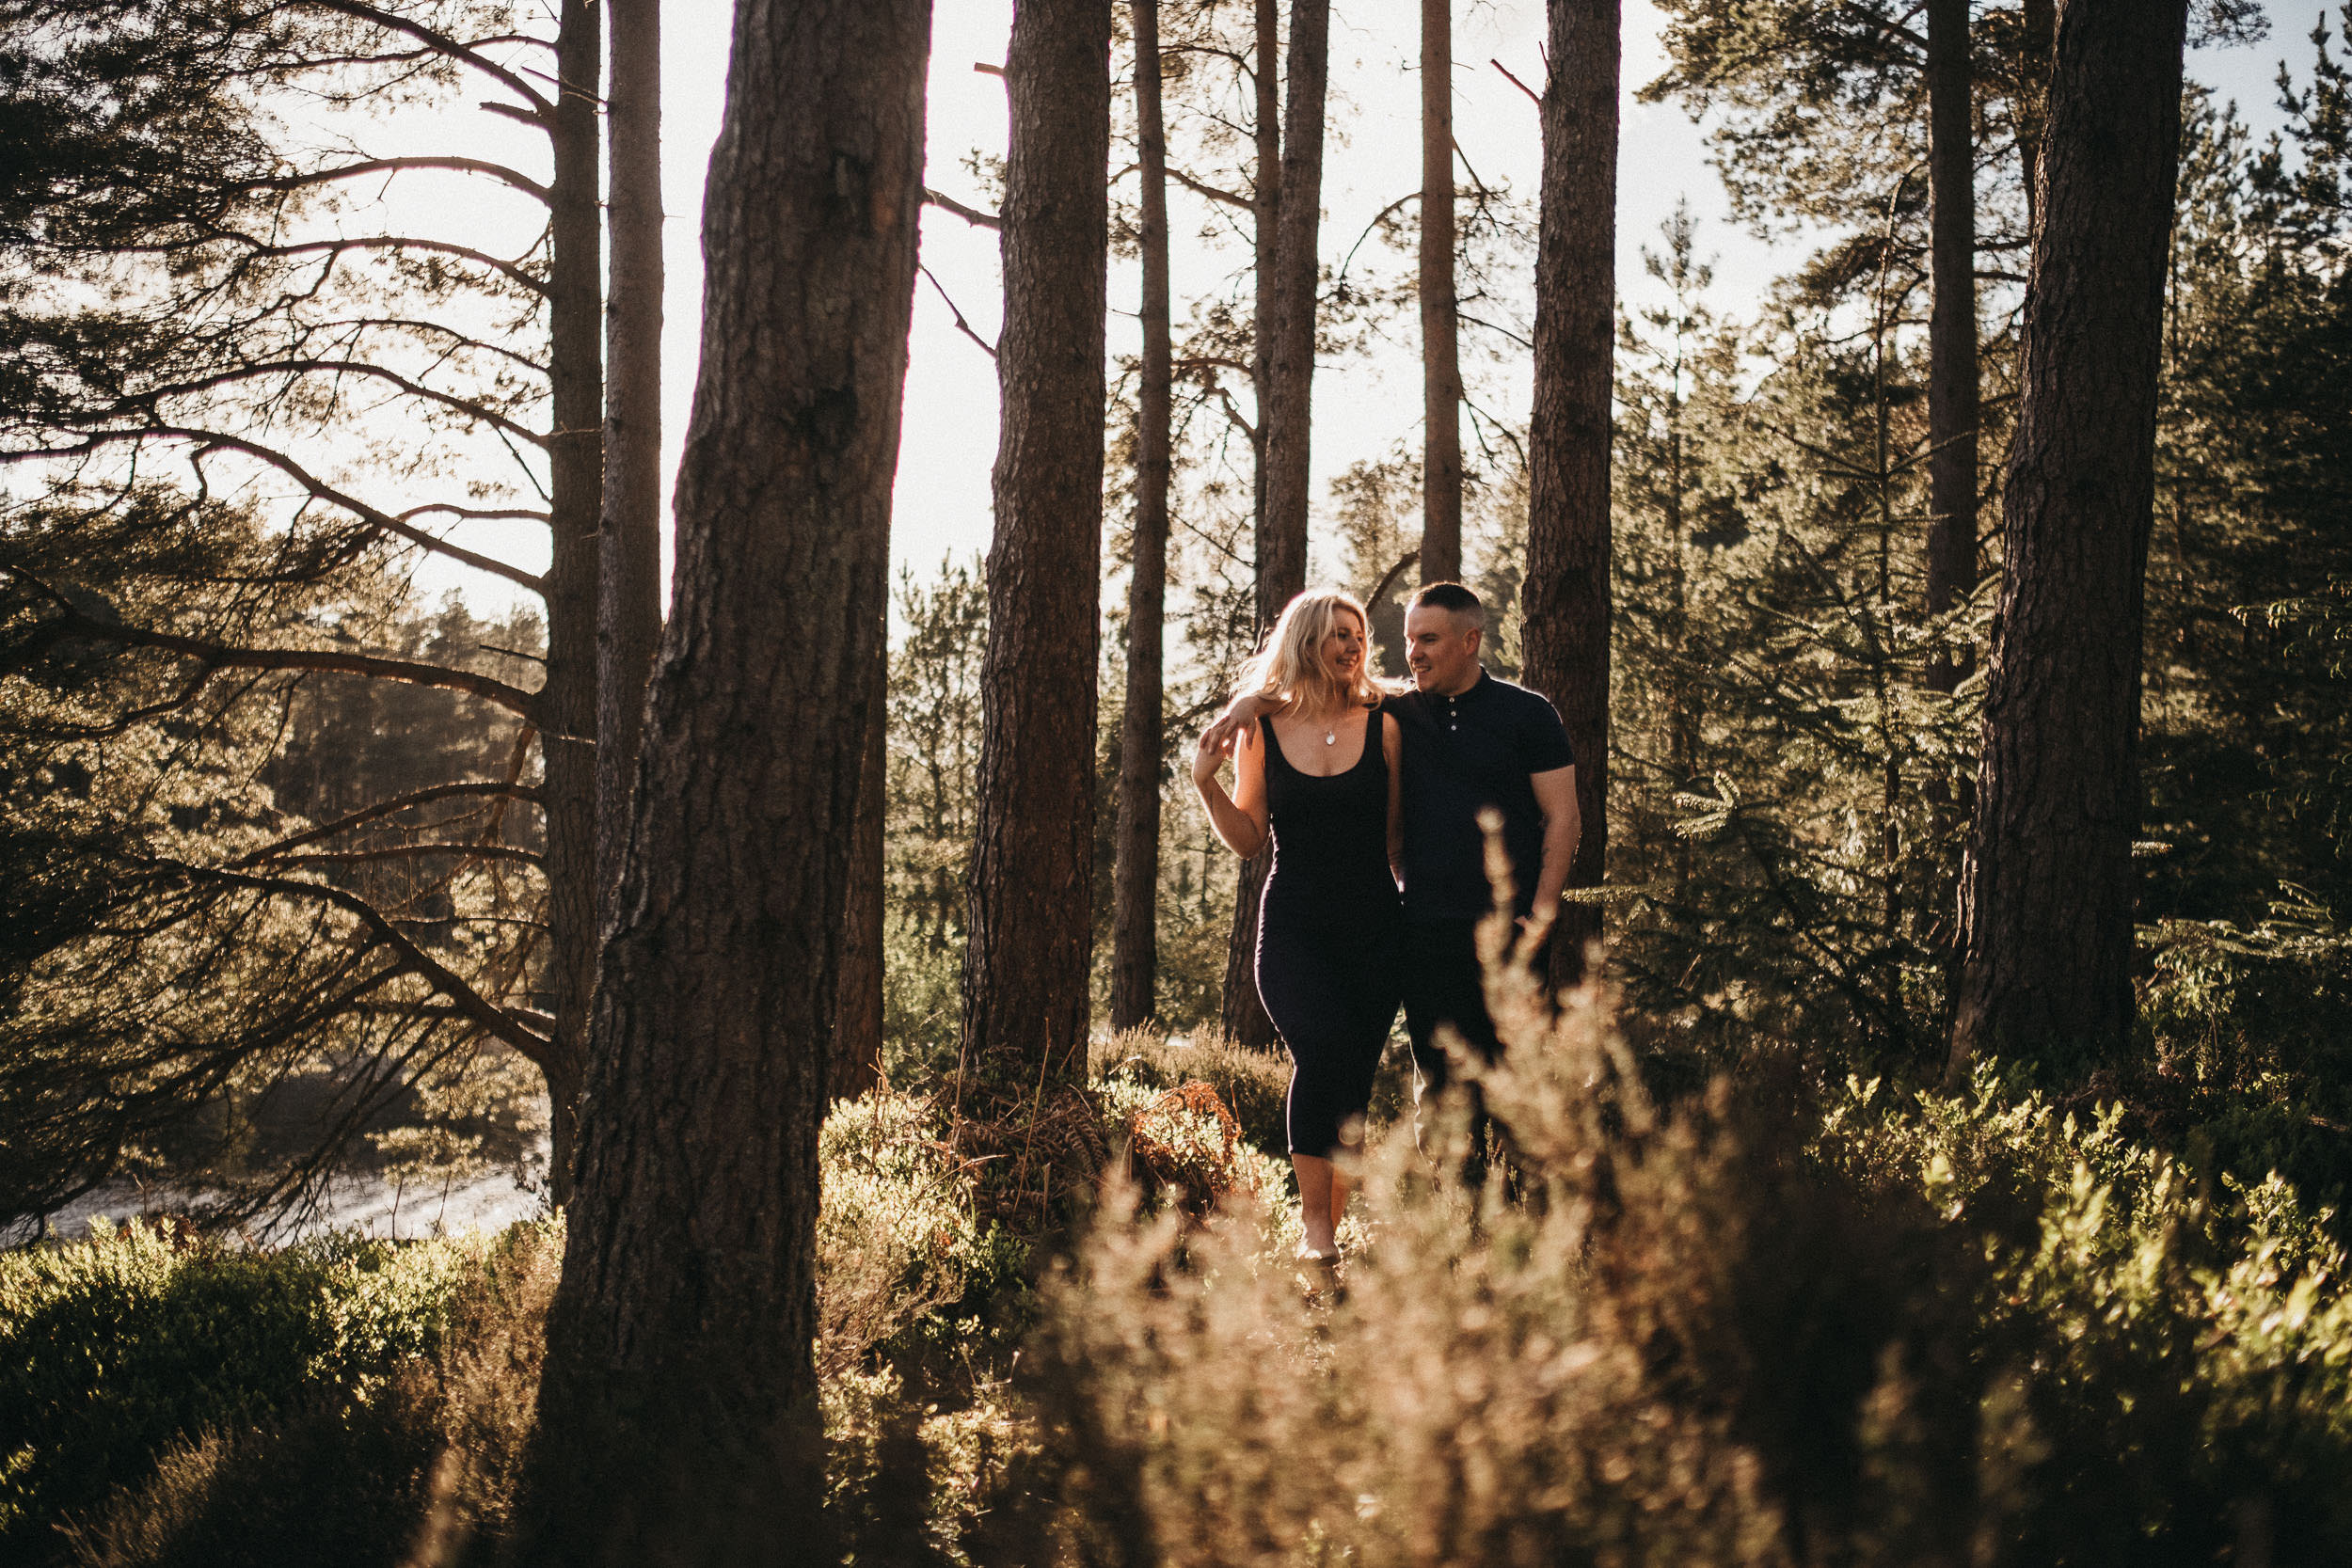 Couple walk through Kielder Forest drenched in sunlight